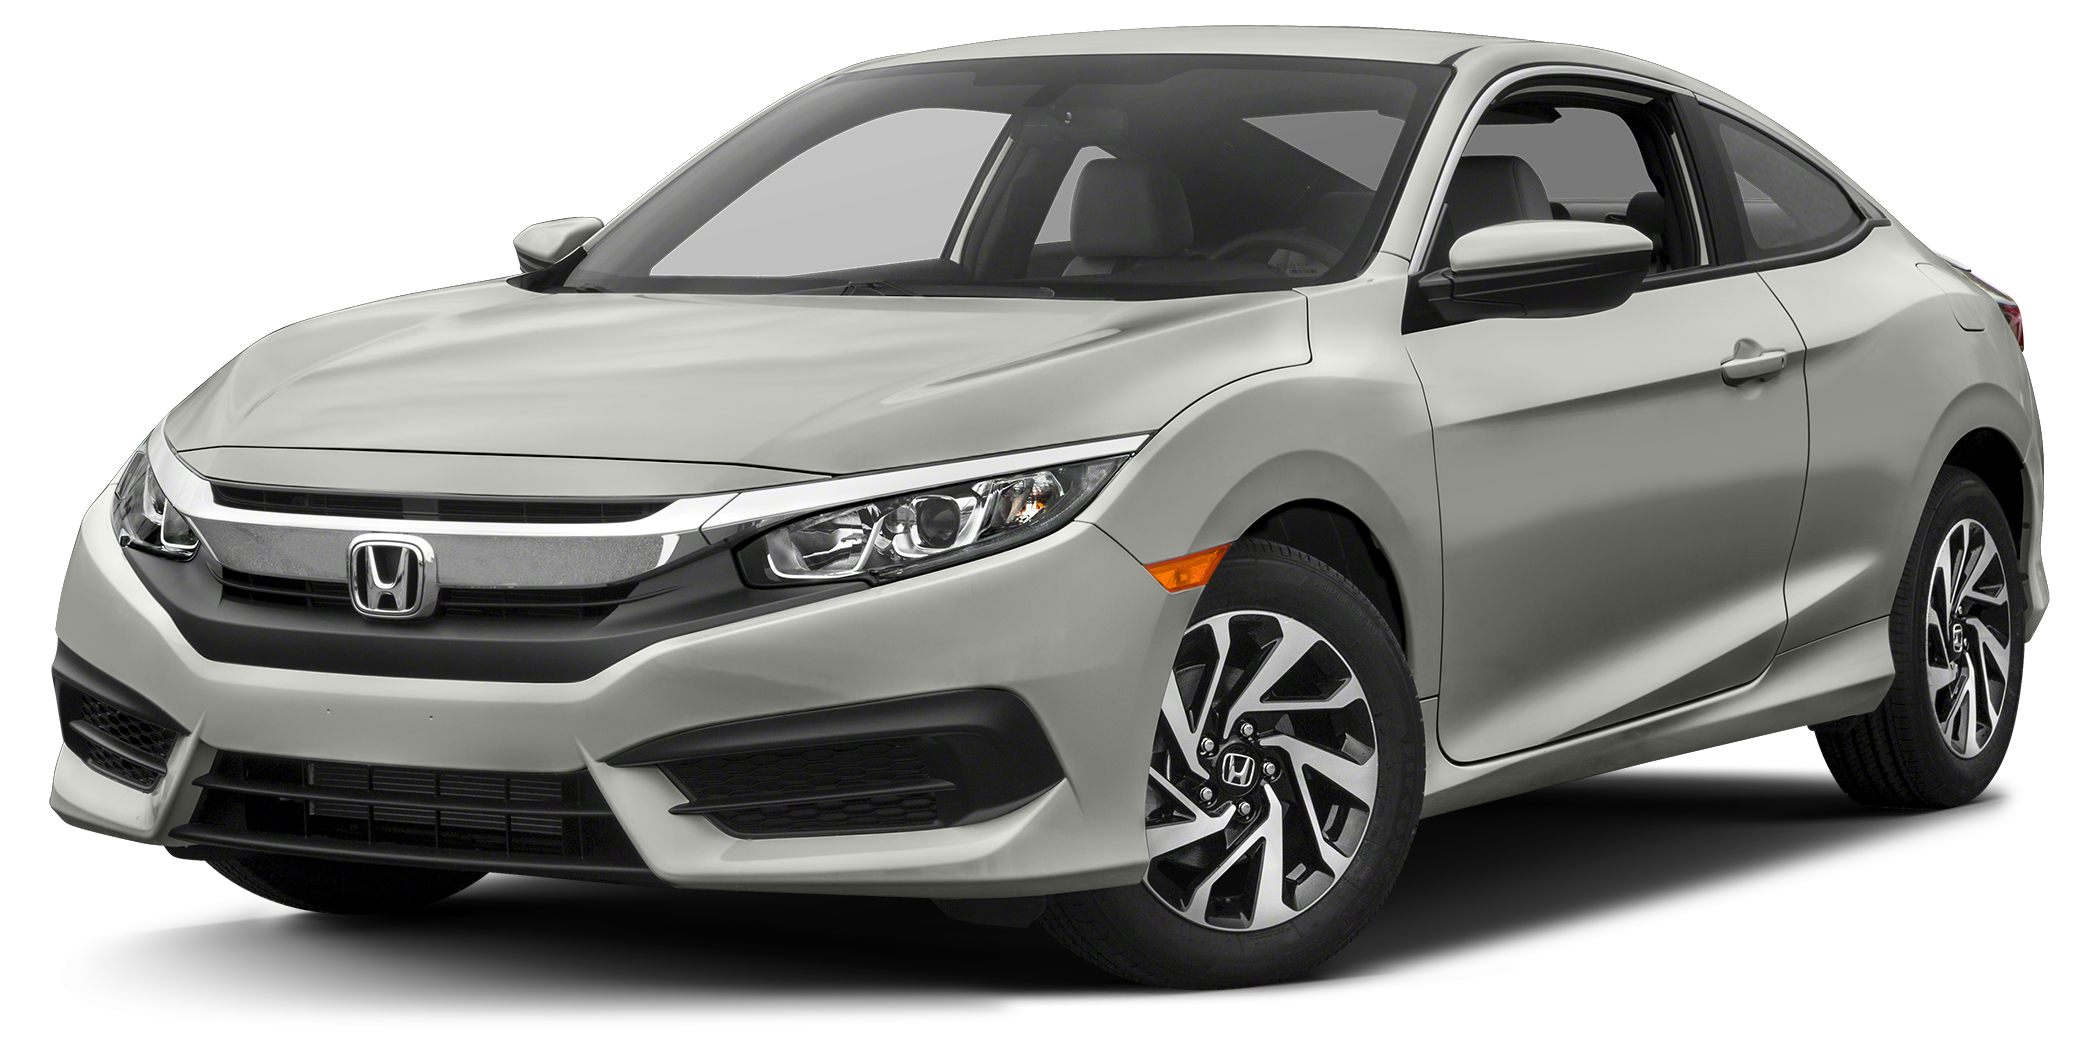 2016 Honda Civic LX Come to the experts All the right ingredients Buy a new Honda from Diamond V